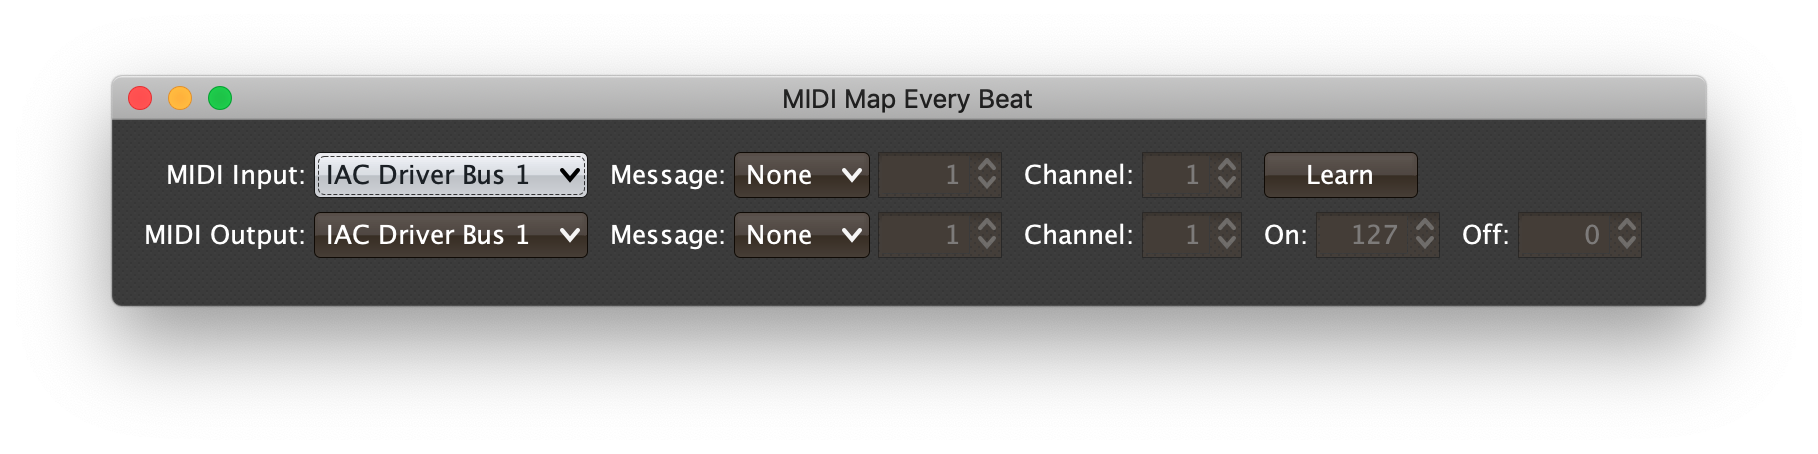 MIDI mapping interface